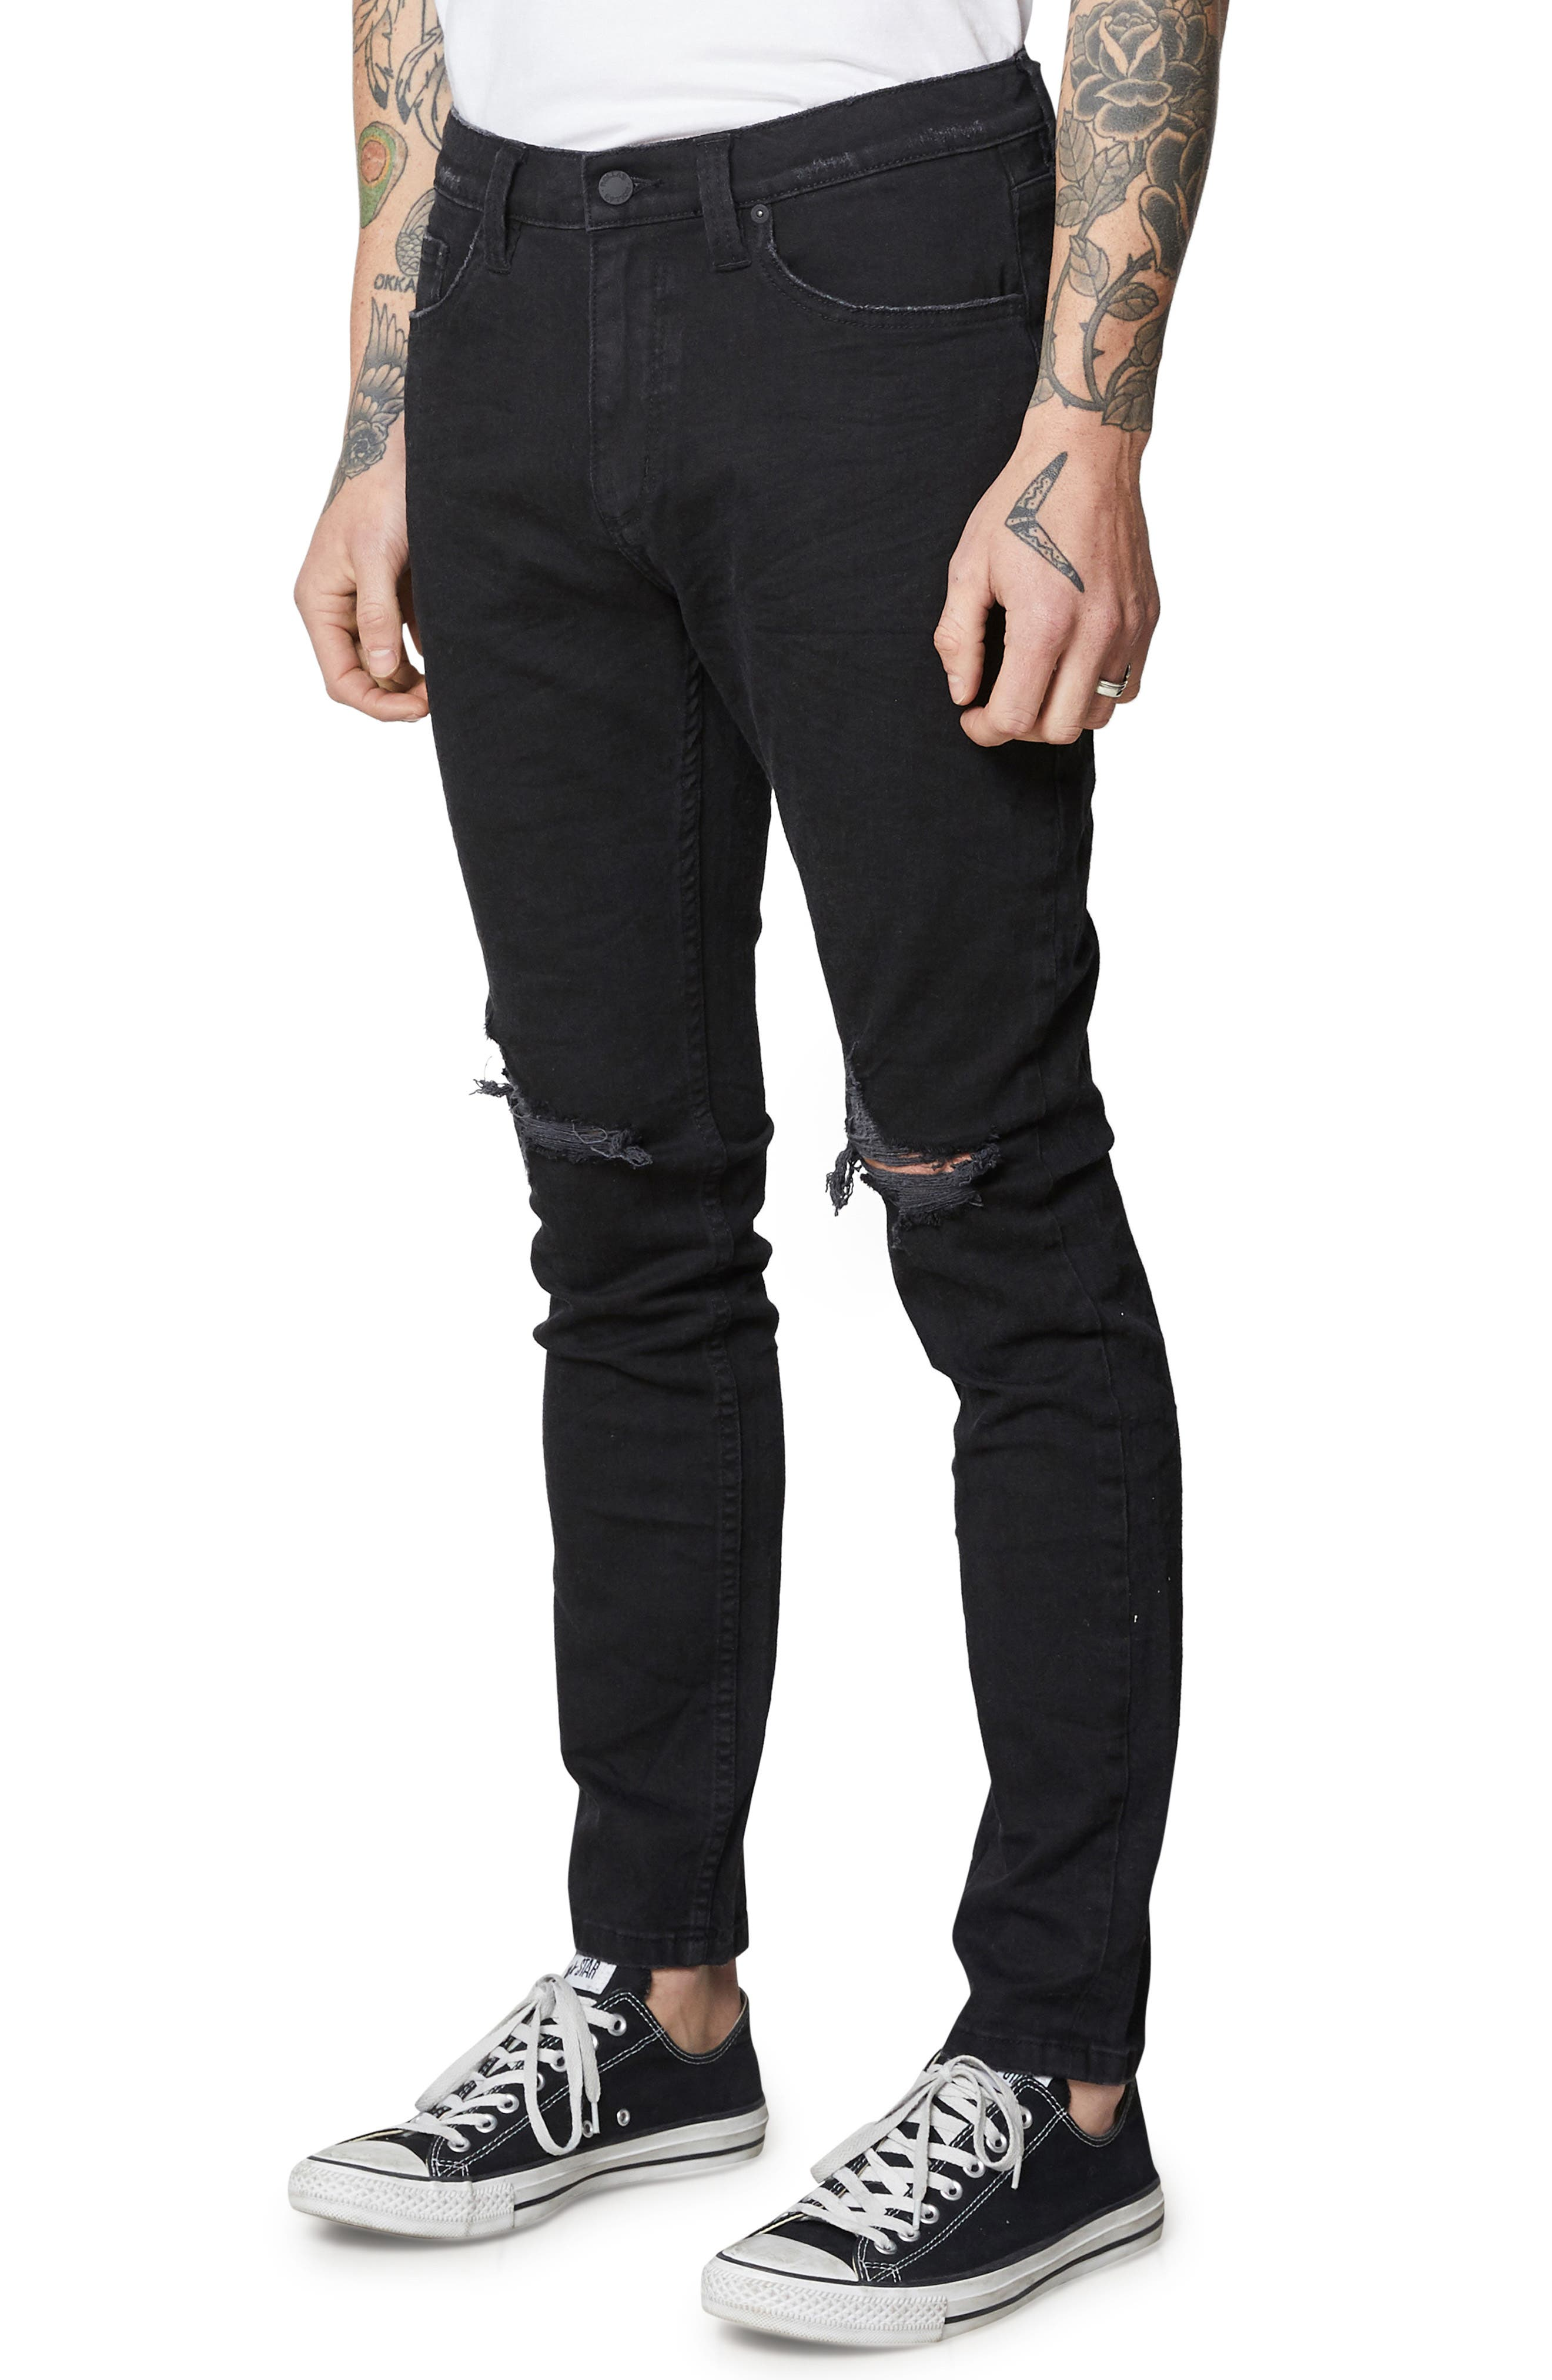 Stinger Skinny Fit Jeans,                             Alternate thumbnail 3, color,                             BLACK RIP